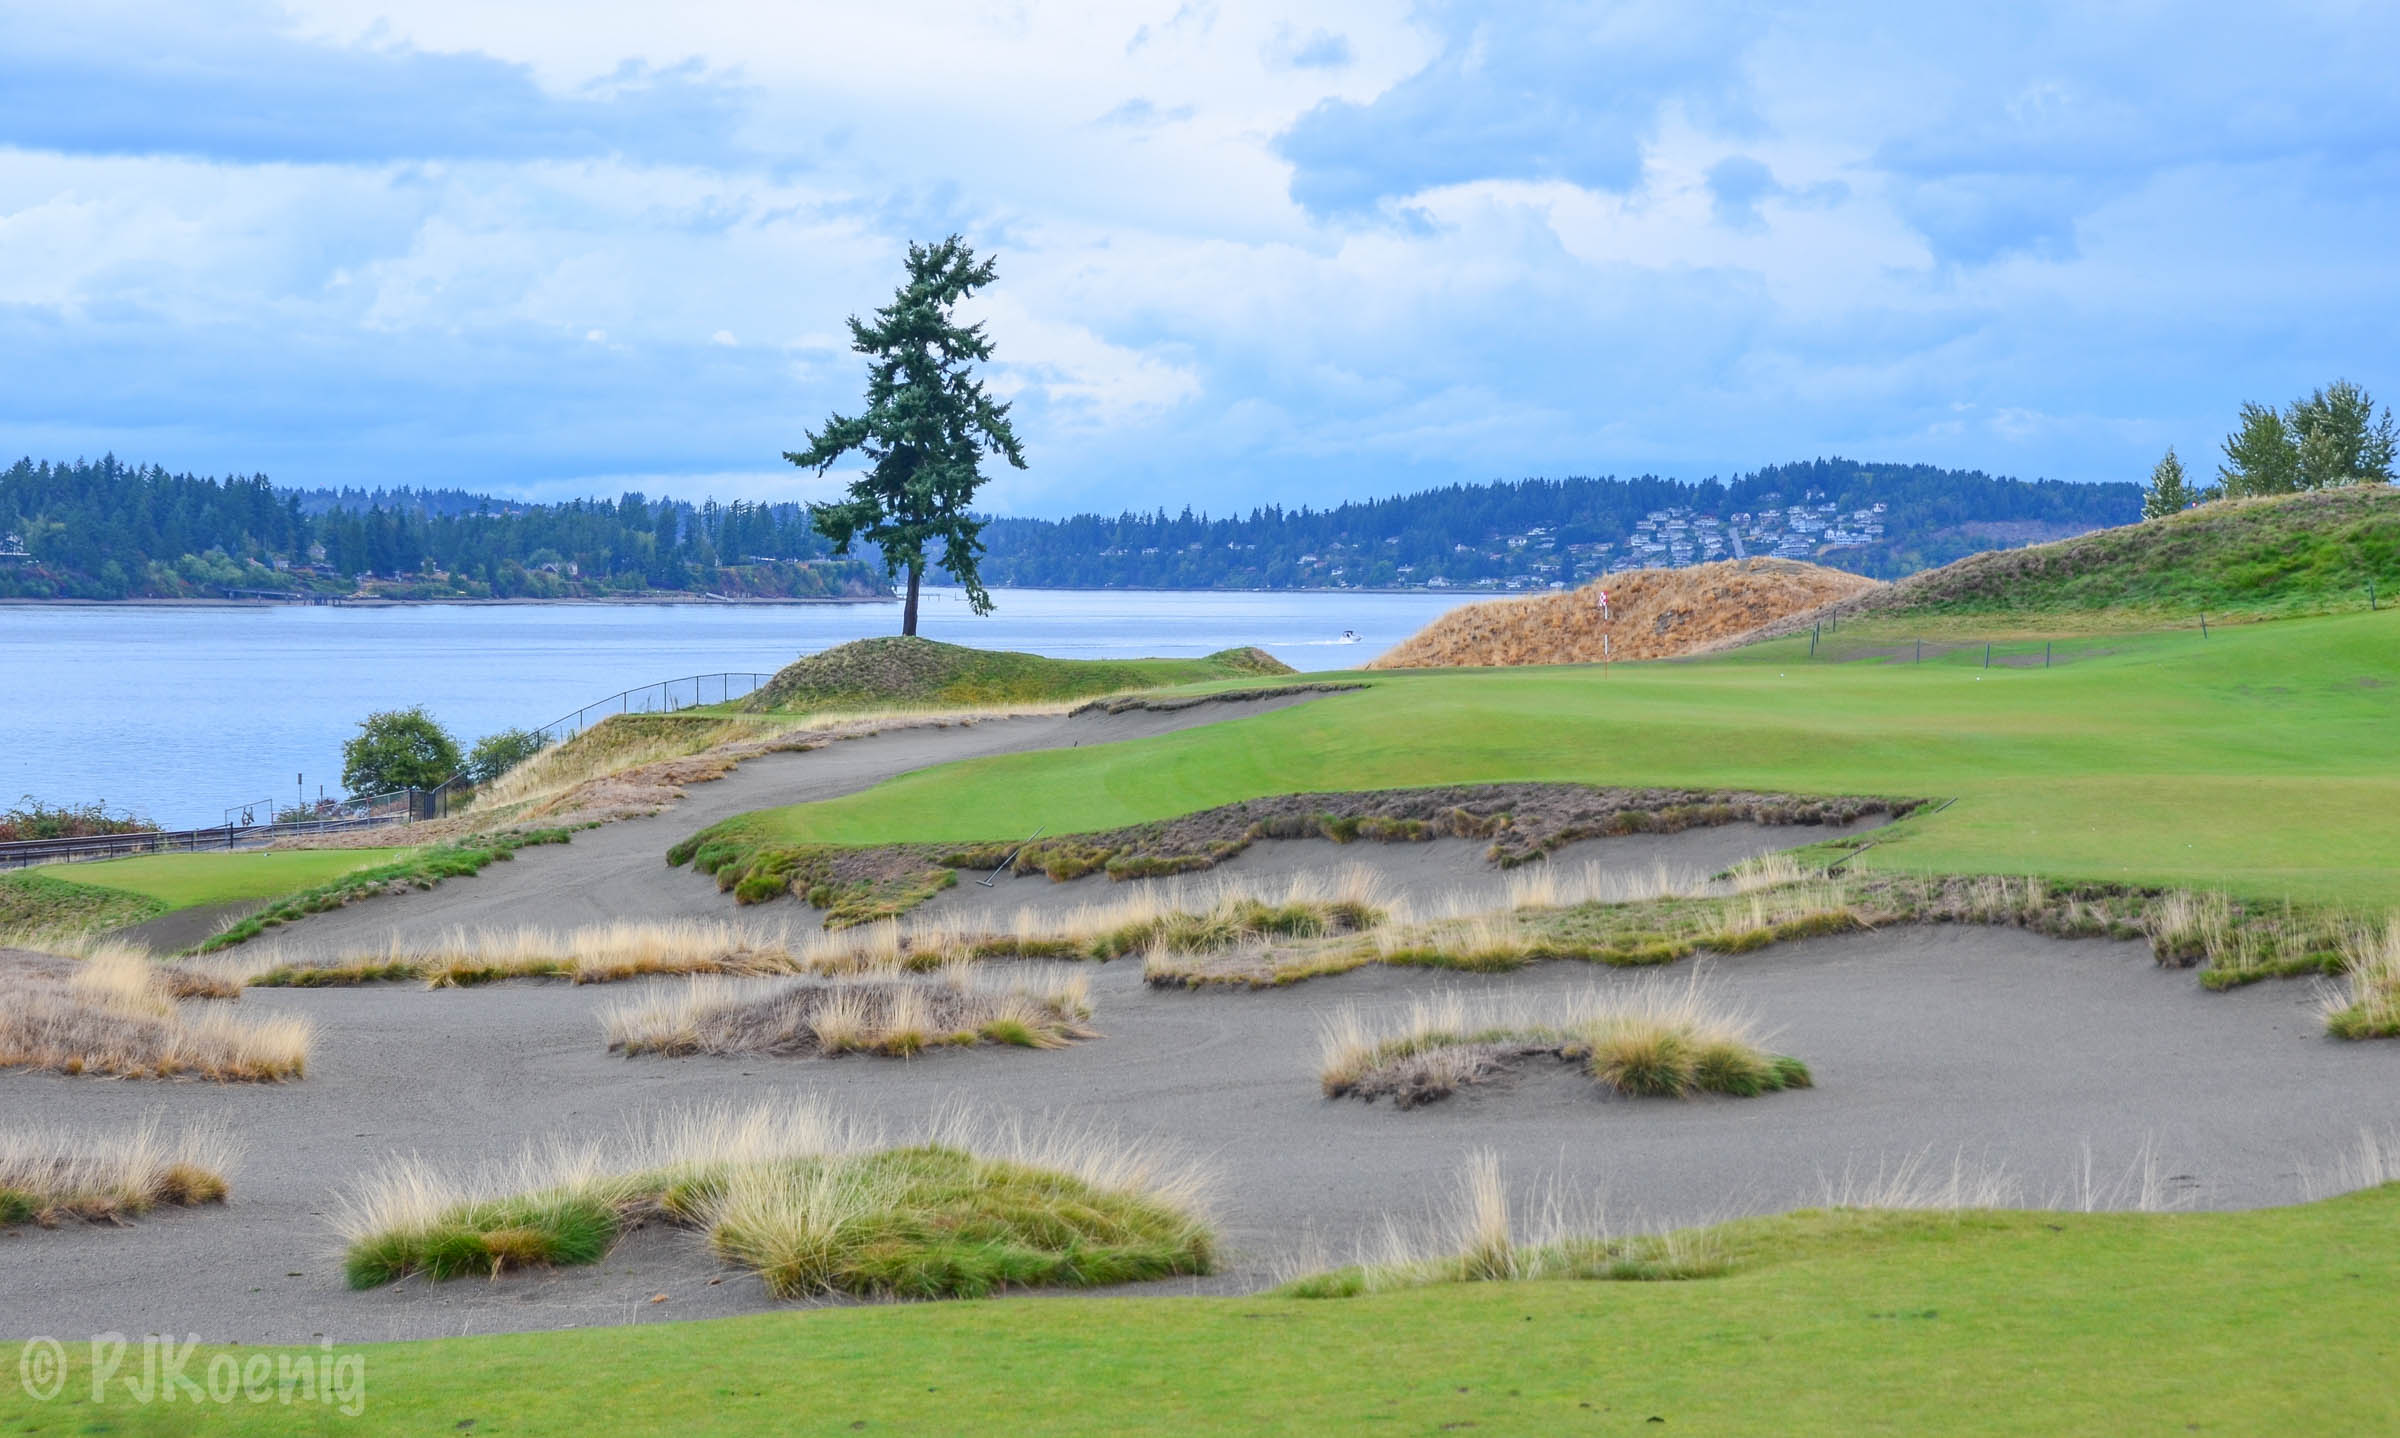 After hosting the US Open in 2015, Chambers Bay comes in at #26